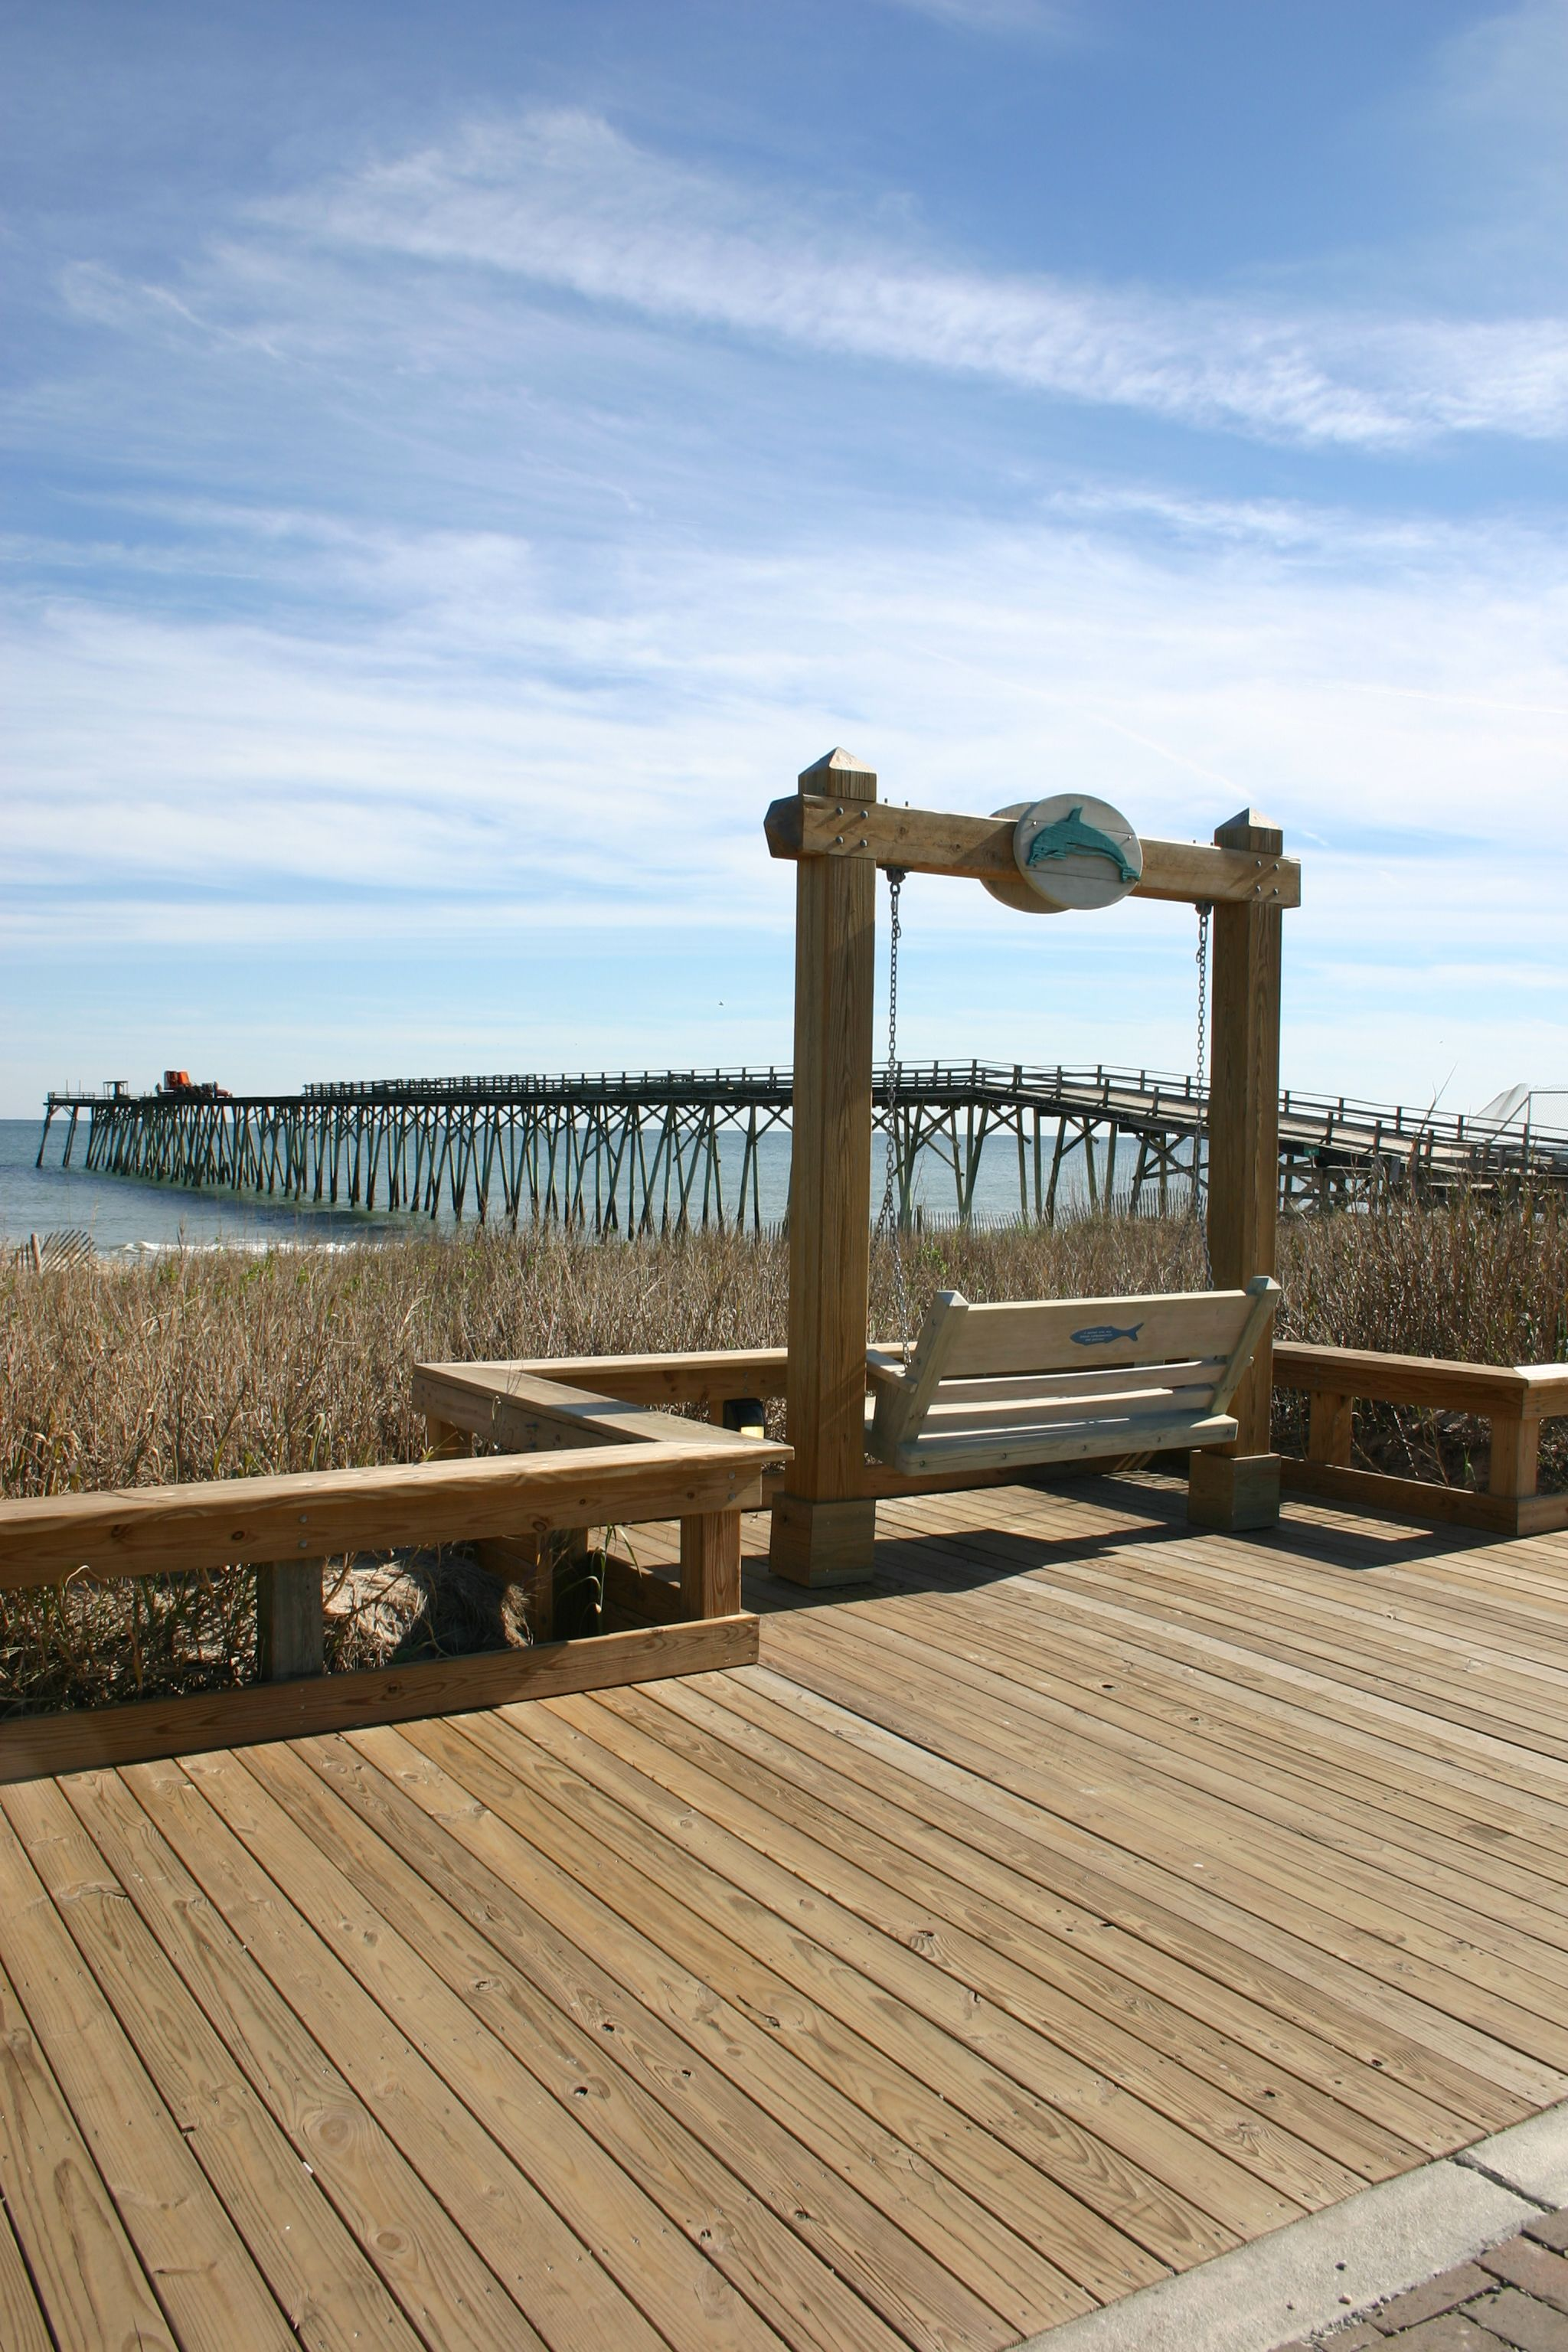 Carolina Beach Today Featured The New Ocean Front Park On